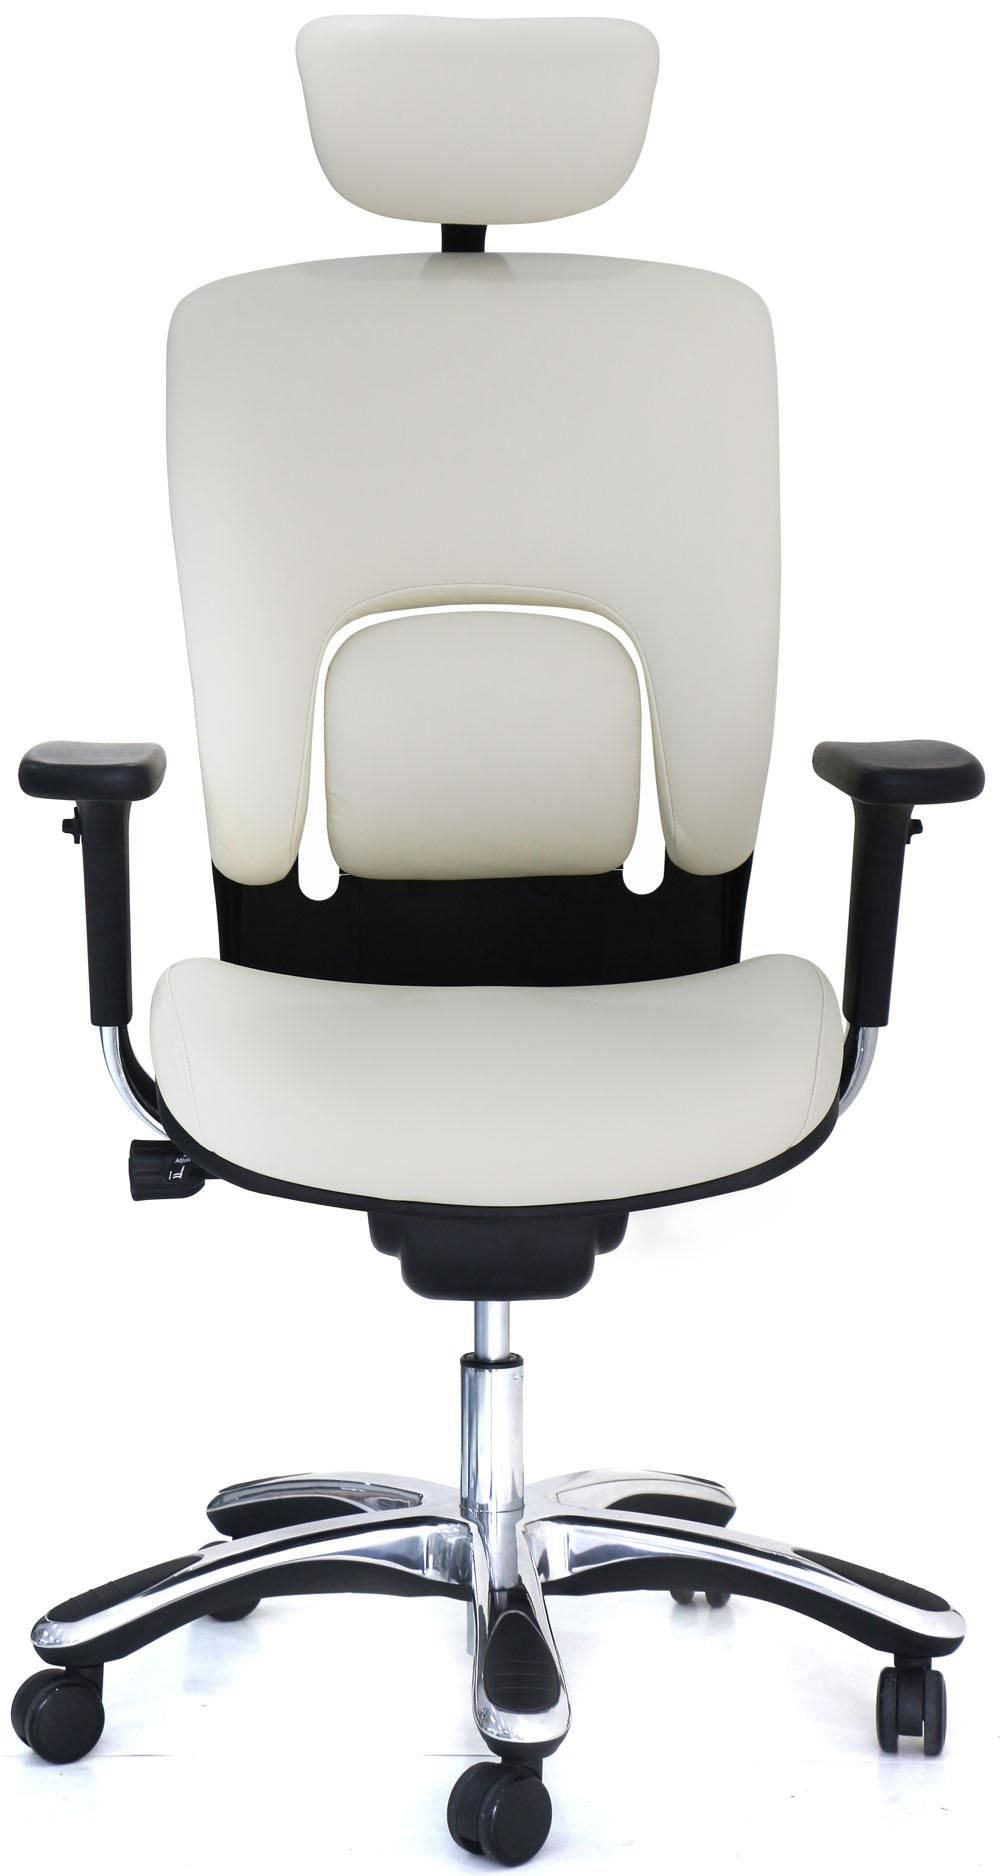 White Ergolux Genuine Leather High Back Executive Office Chair Front View White Leather Chair Best Ergonomic